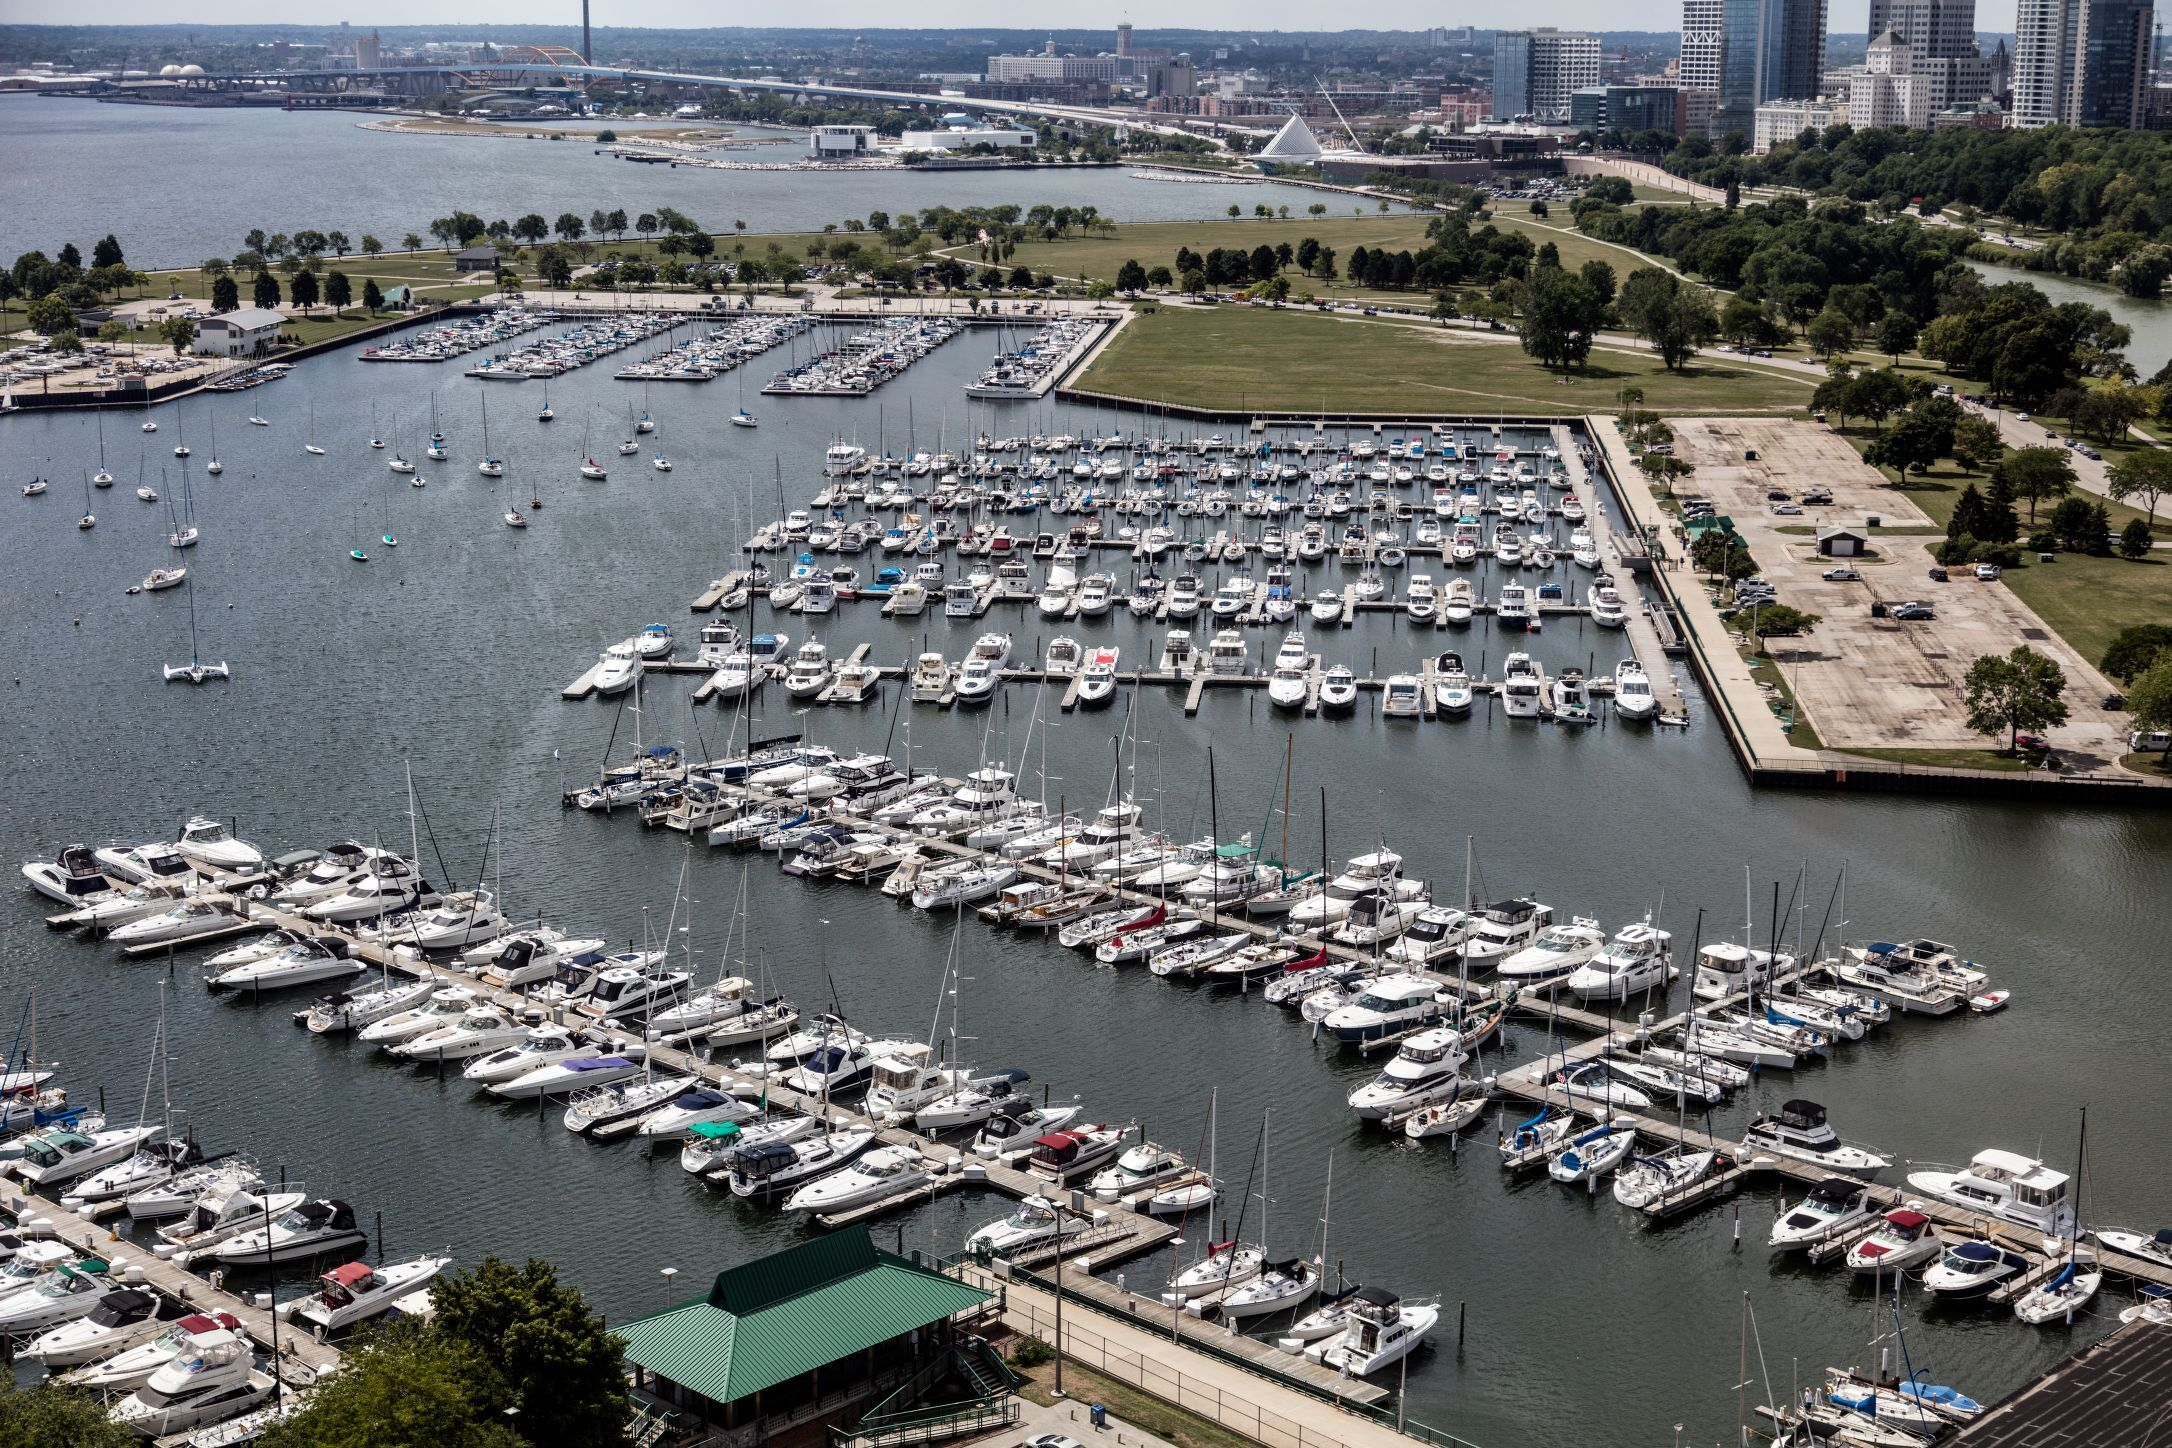 Boats fill McKinley Marina in the foreground while Milwaukee stretches along the coast of Lake Michigan in the background of this 2016 photograph.